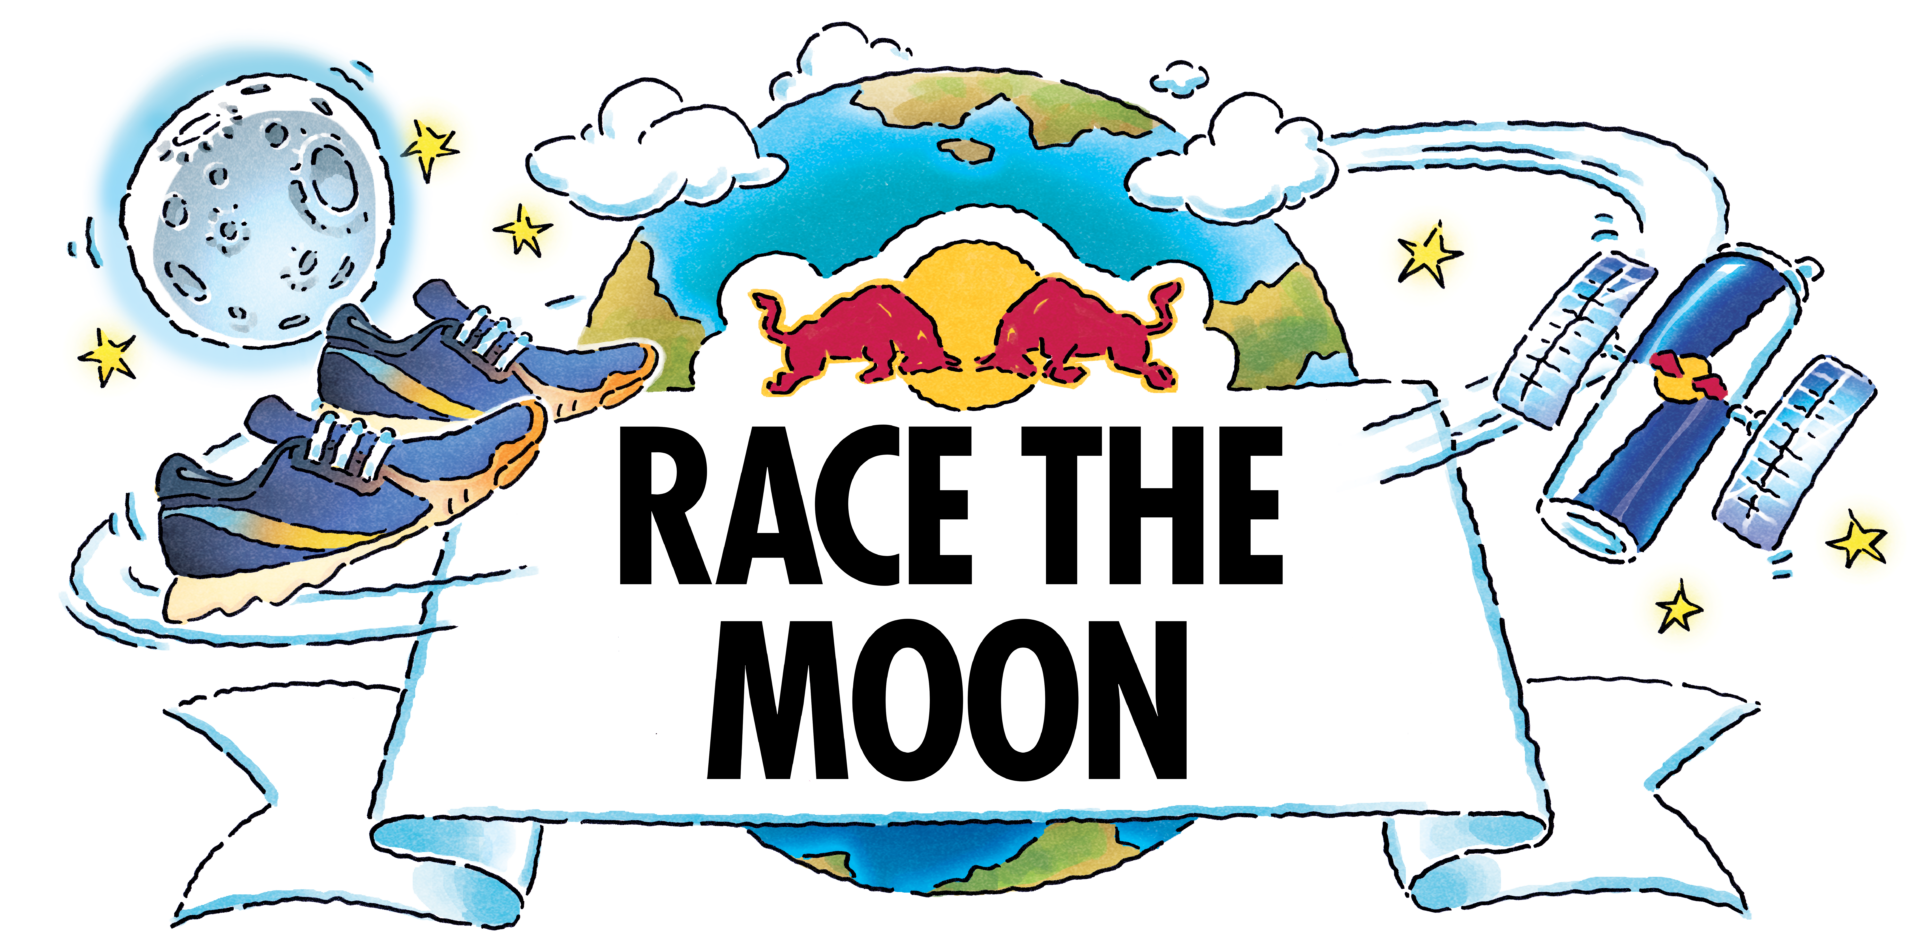 The Challenge That's Out Of This World: Red Bull encourages UK runners to Race the Moon 1.5million miles around the Earth